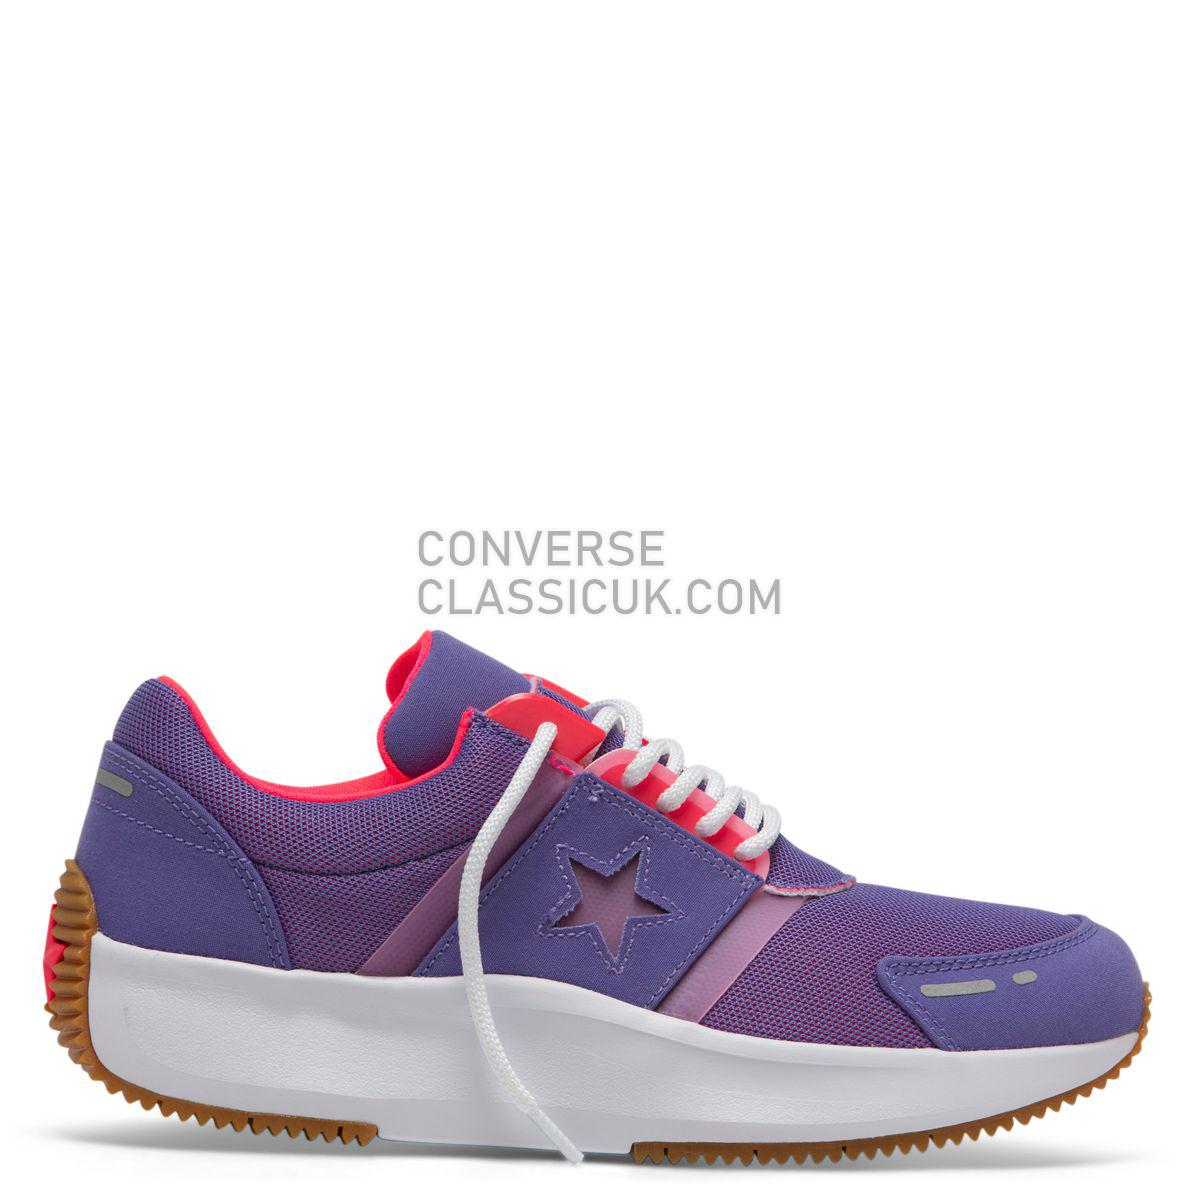 Converse Run Star Retro Glow Low Top Wild Lilac Mens 164291 Wild Lilac/Racer Pink/White Shoes